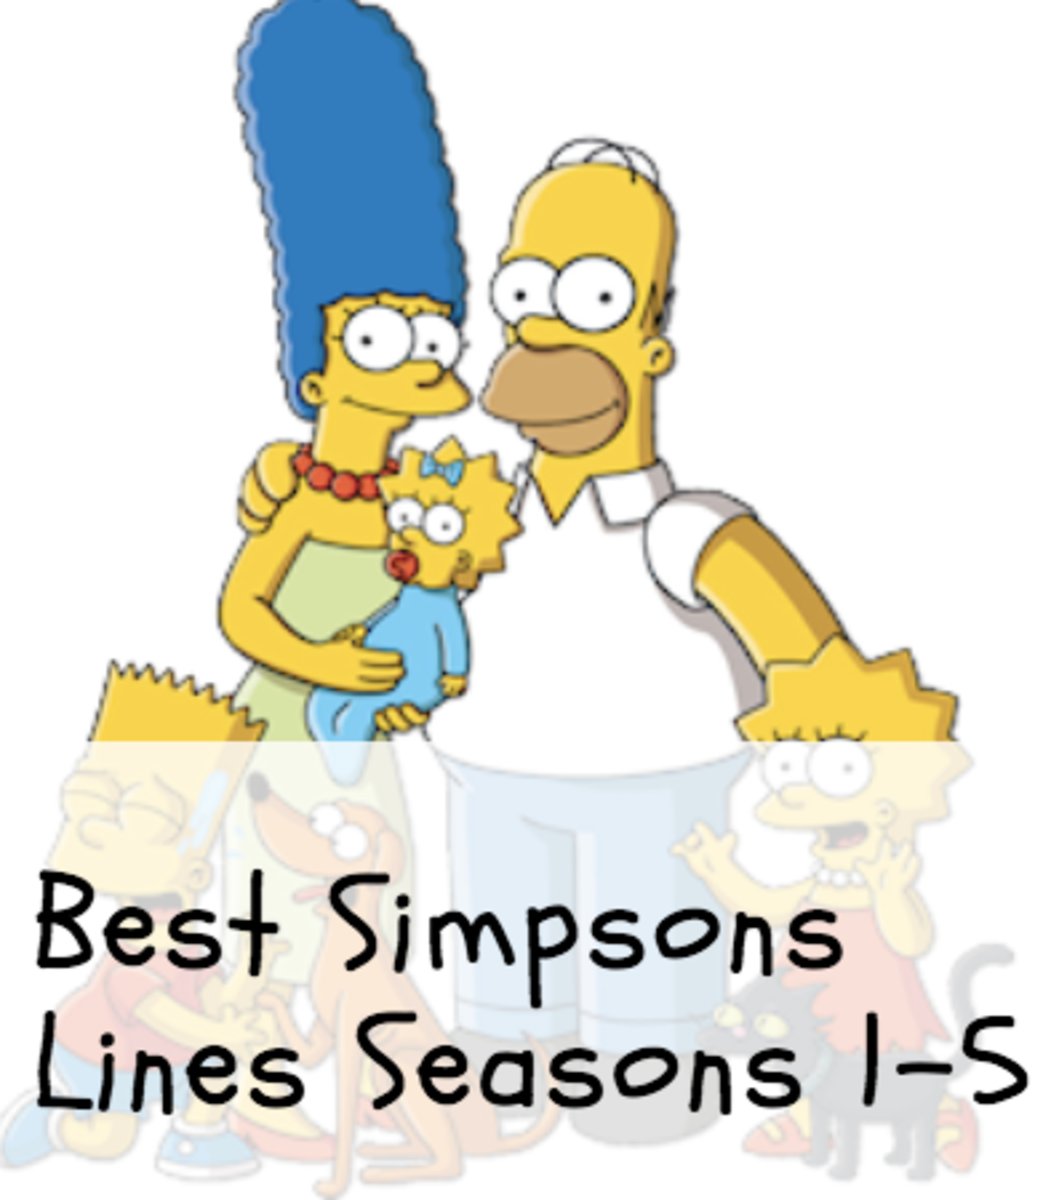 "Read the best ""Simpsons"" lines from seasons 1-5."